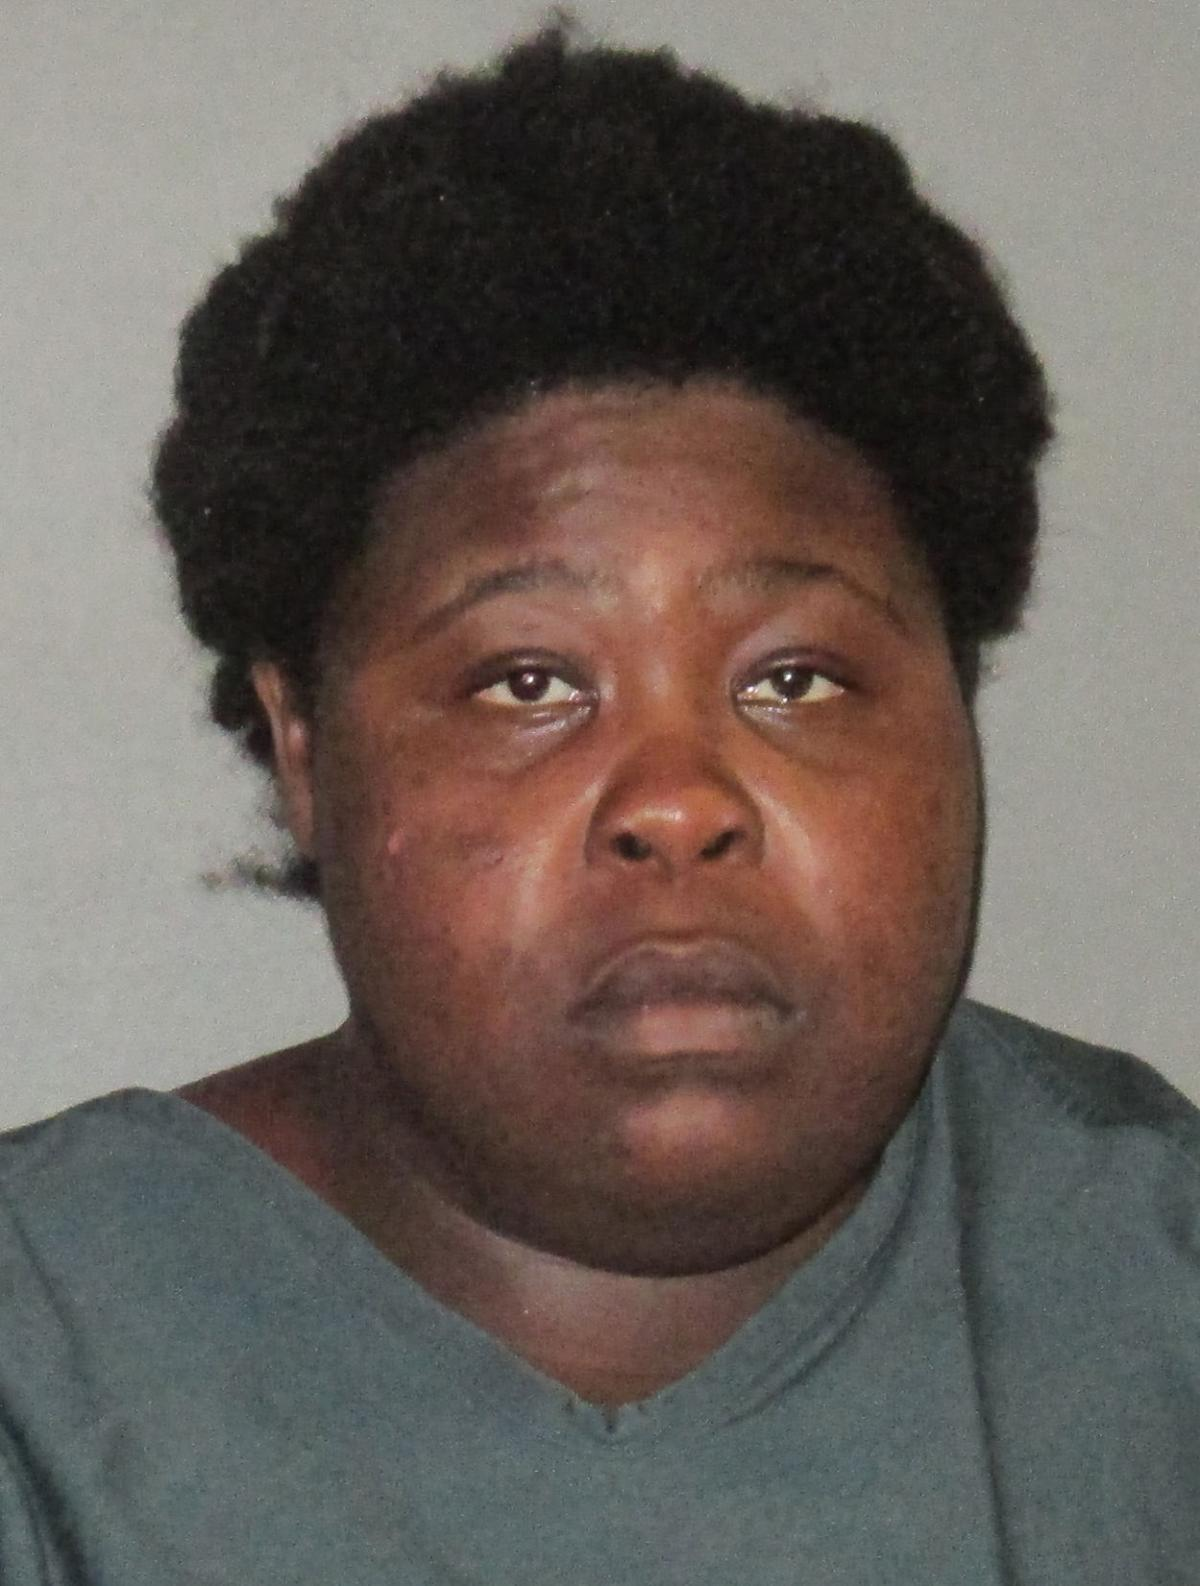 Officials: Woman forces her way into Baton Rouge fast food restaurant, grabs knife _lowres